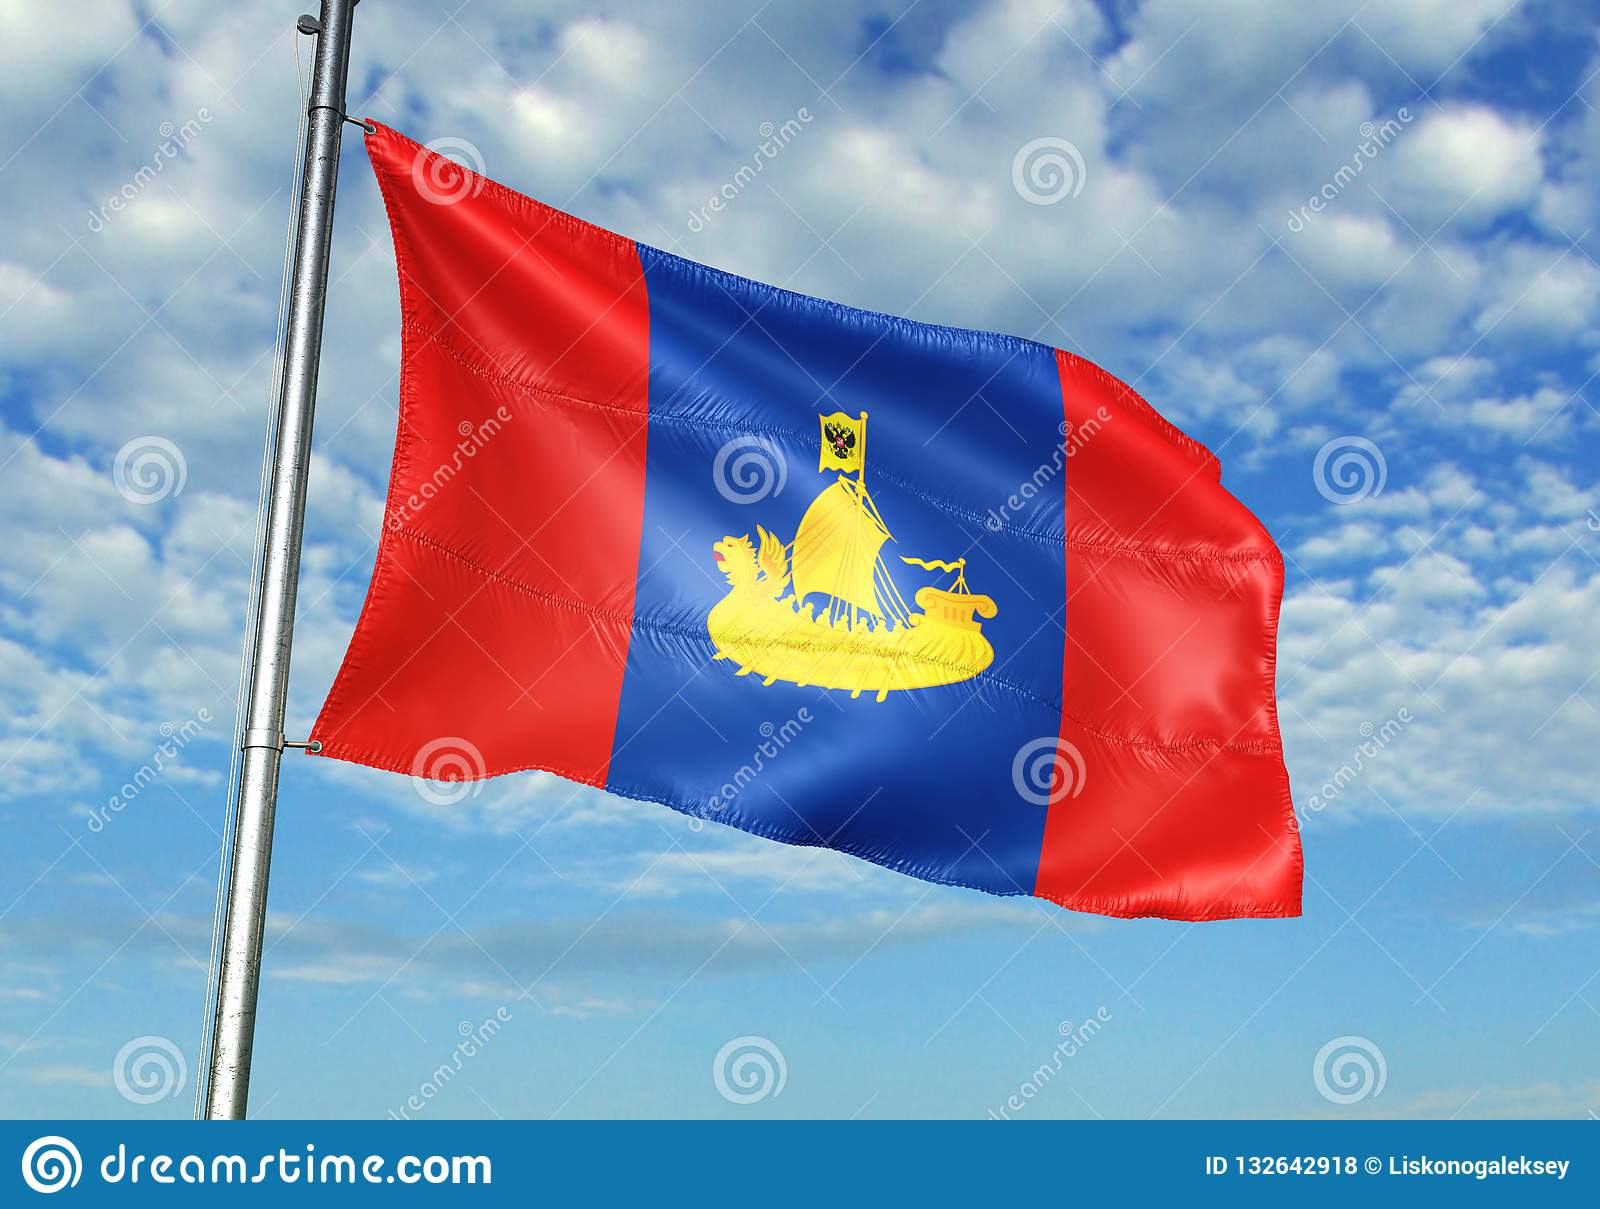 Kostroma Oblast Region Of Russia Flag Waving With Sky On Background